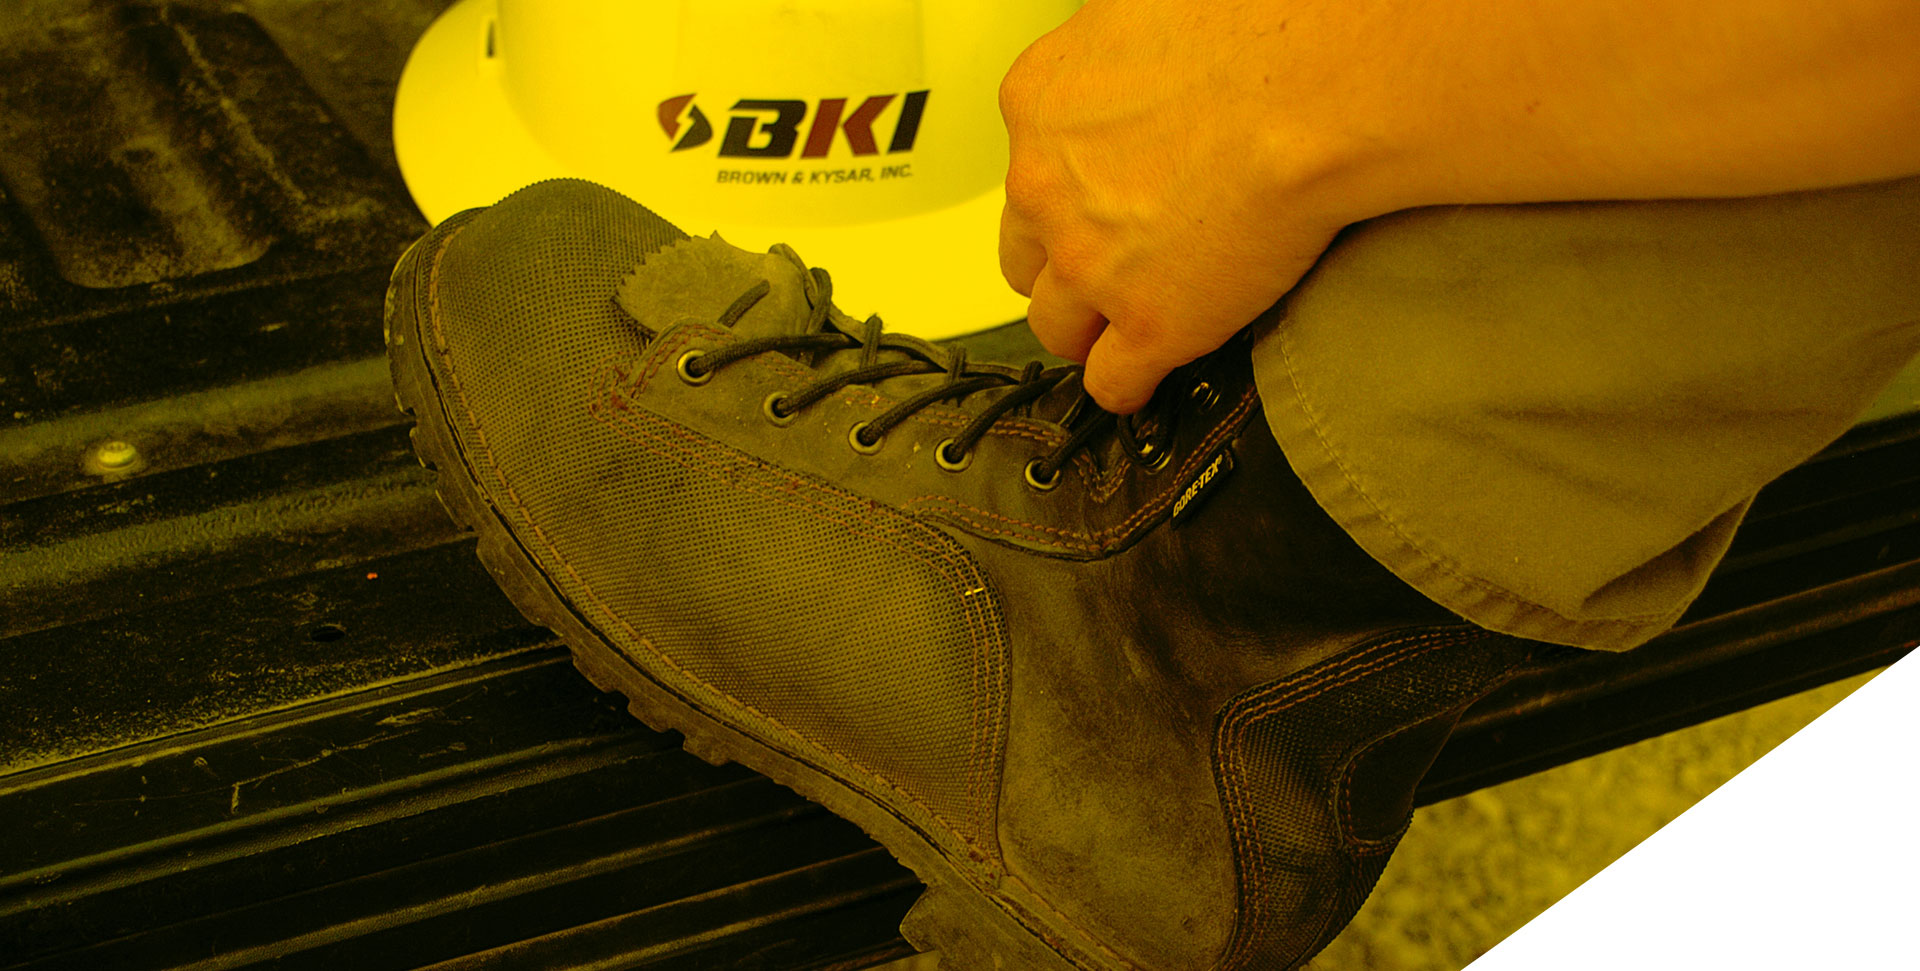 BKI Boots on the ground Slide